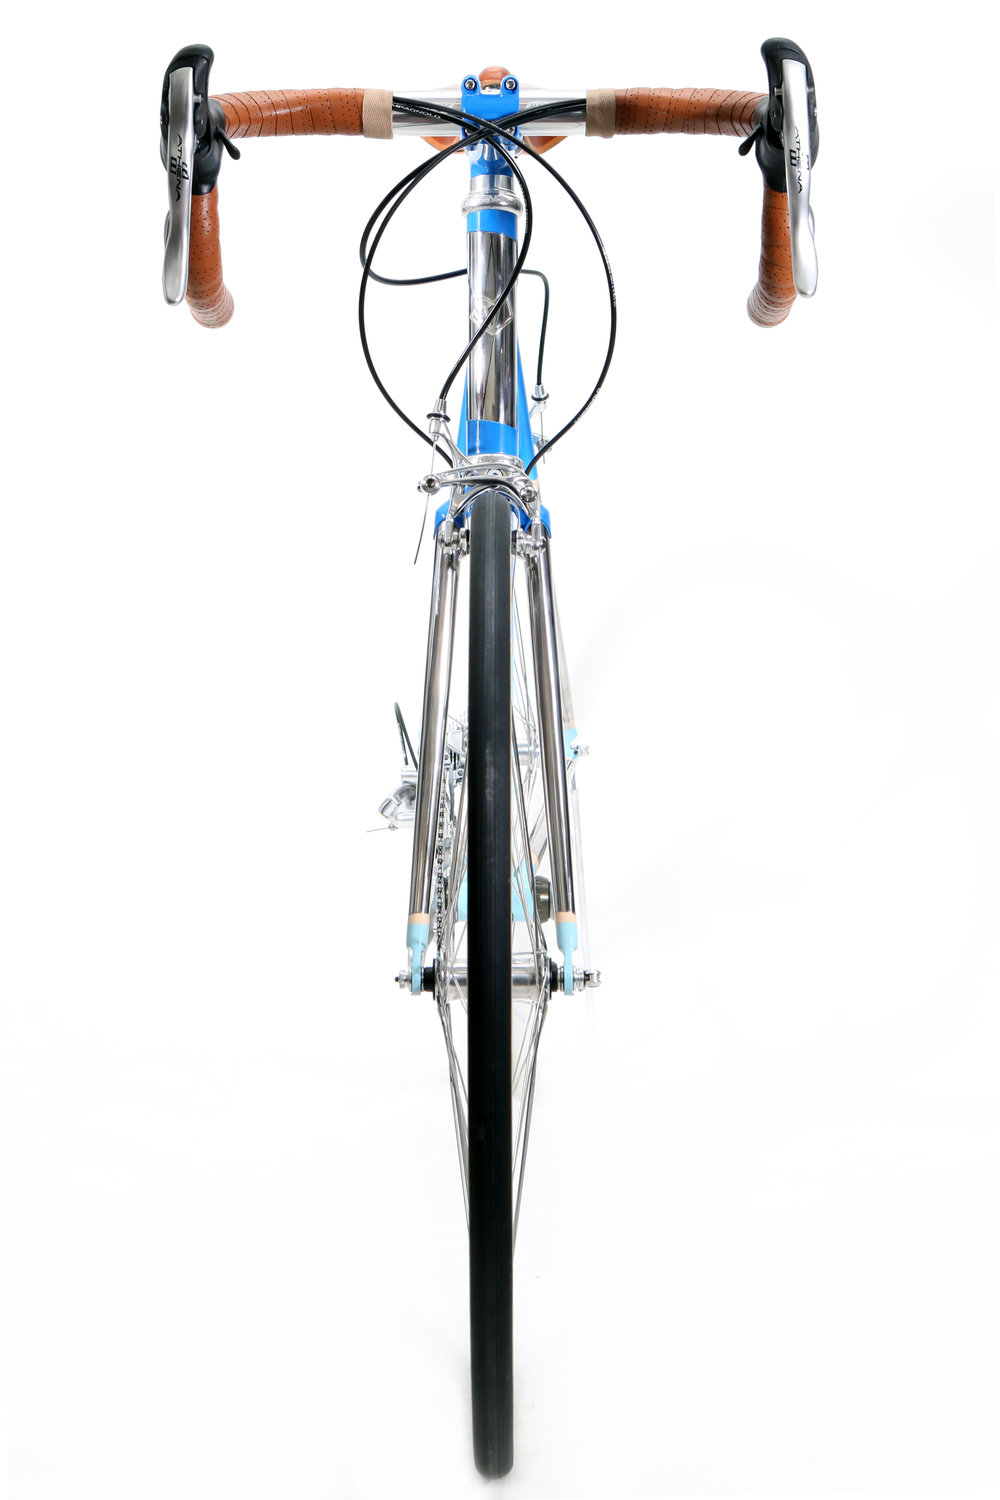 Simon\'s 953 Classic Stainless Road Machine — Hartley CYCLES